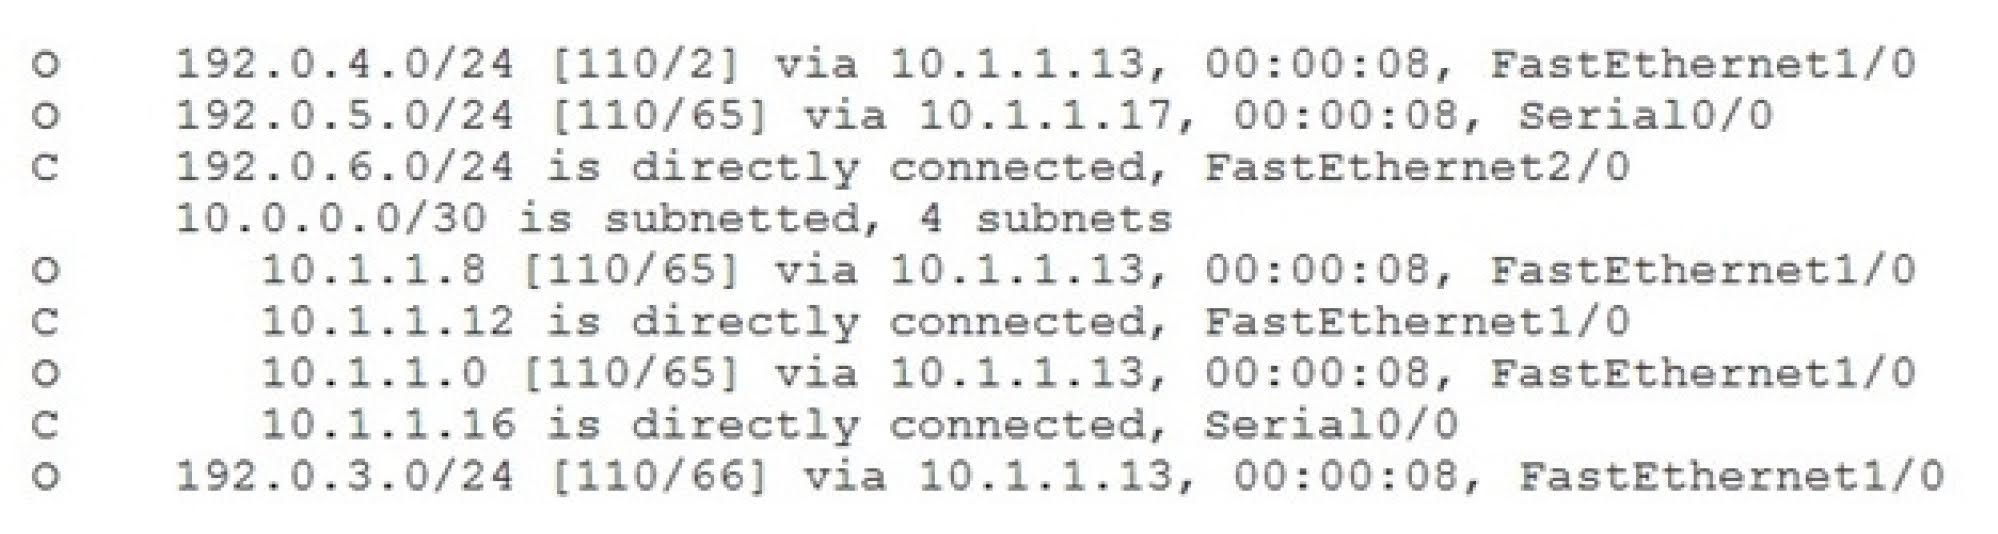 You issue the show ip route command on RouterE and receive the following output.